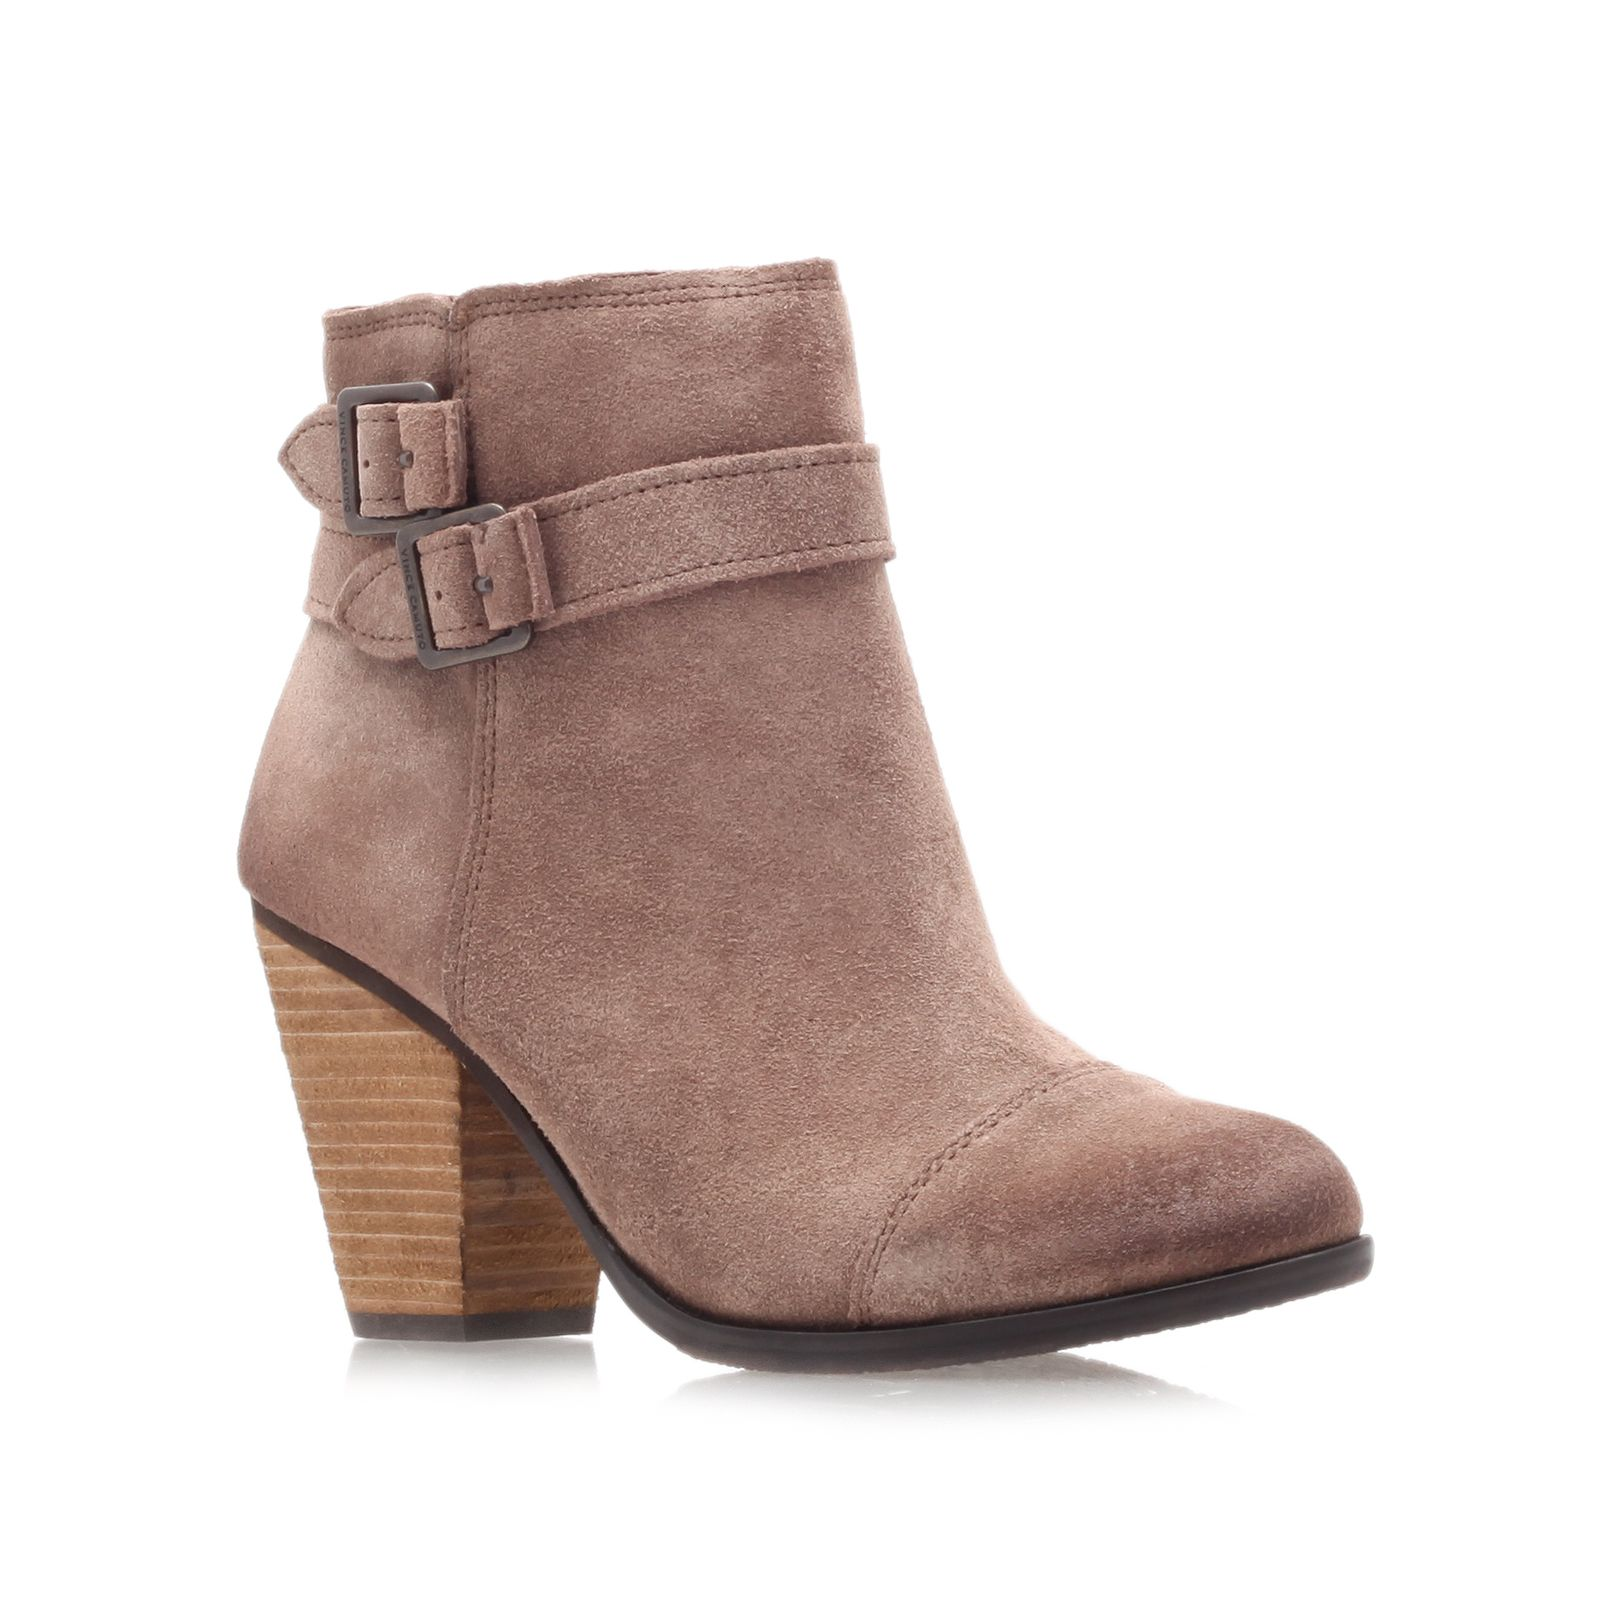 Hasia high heel ankle boots